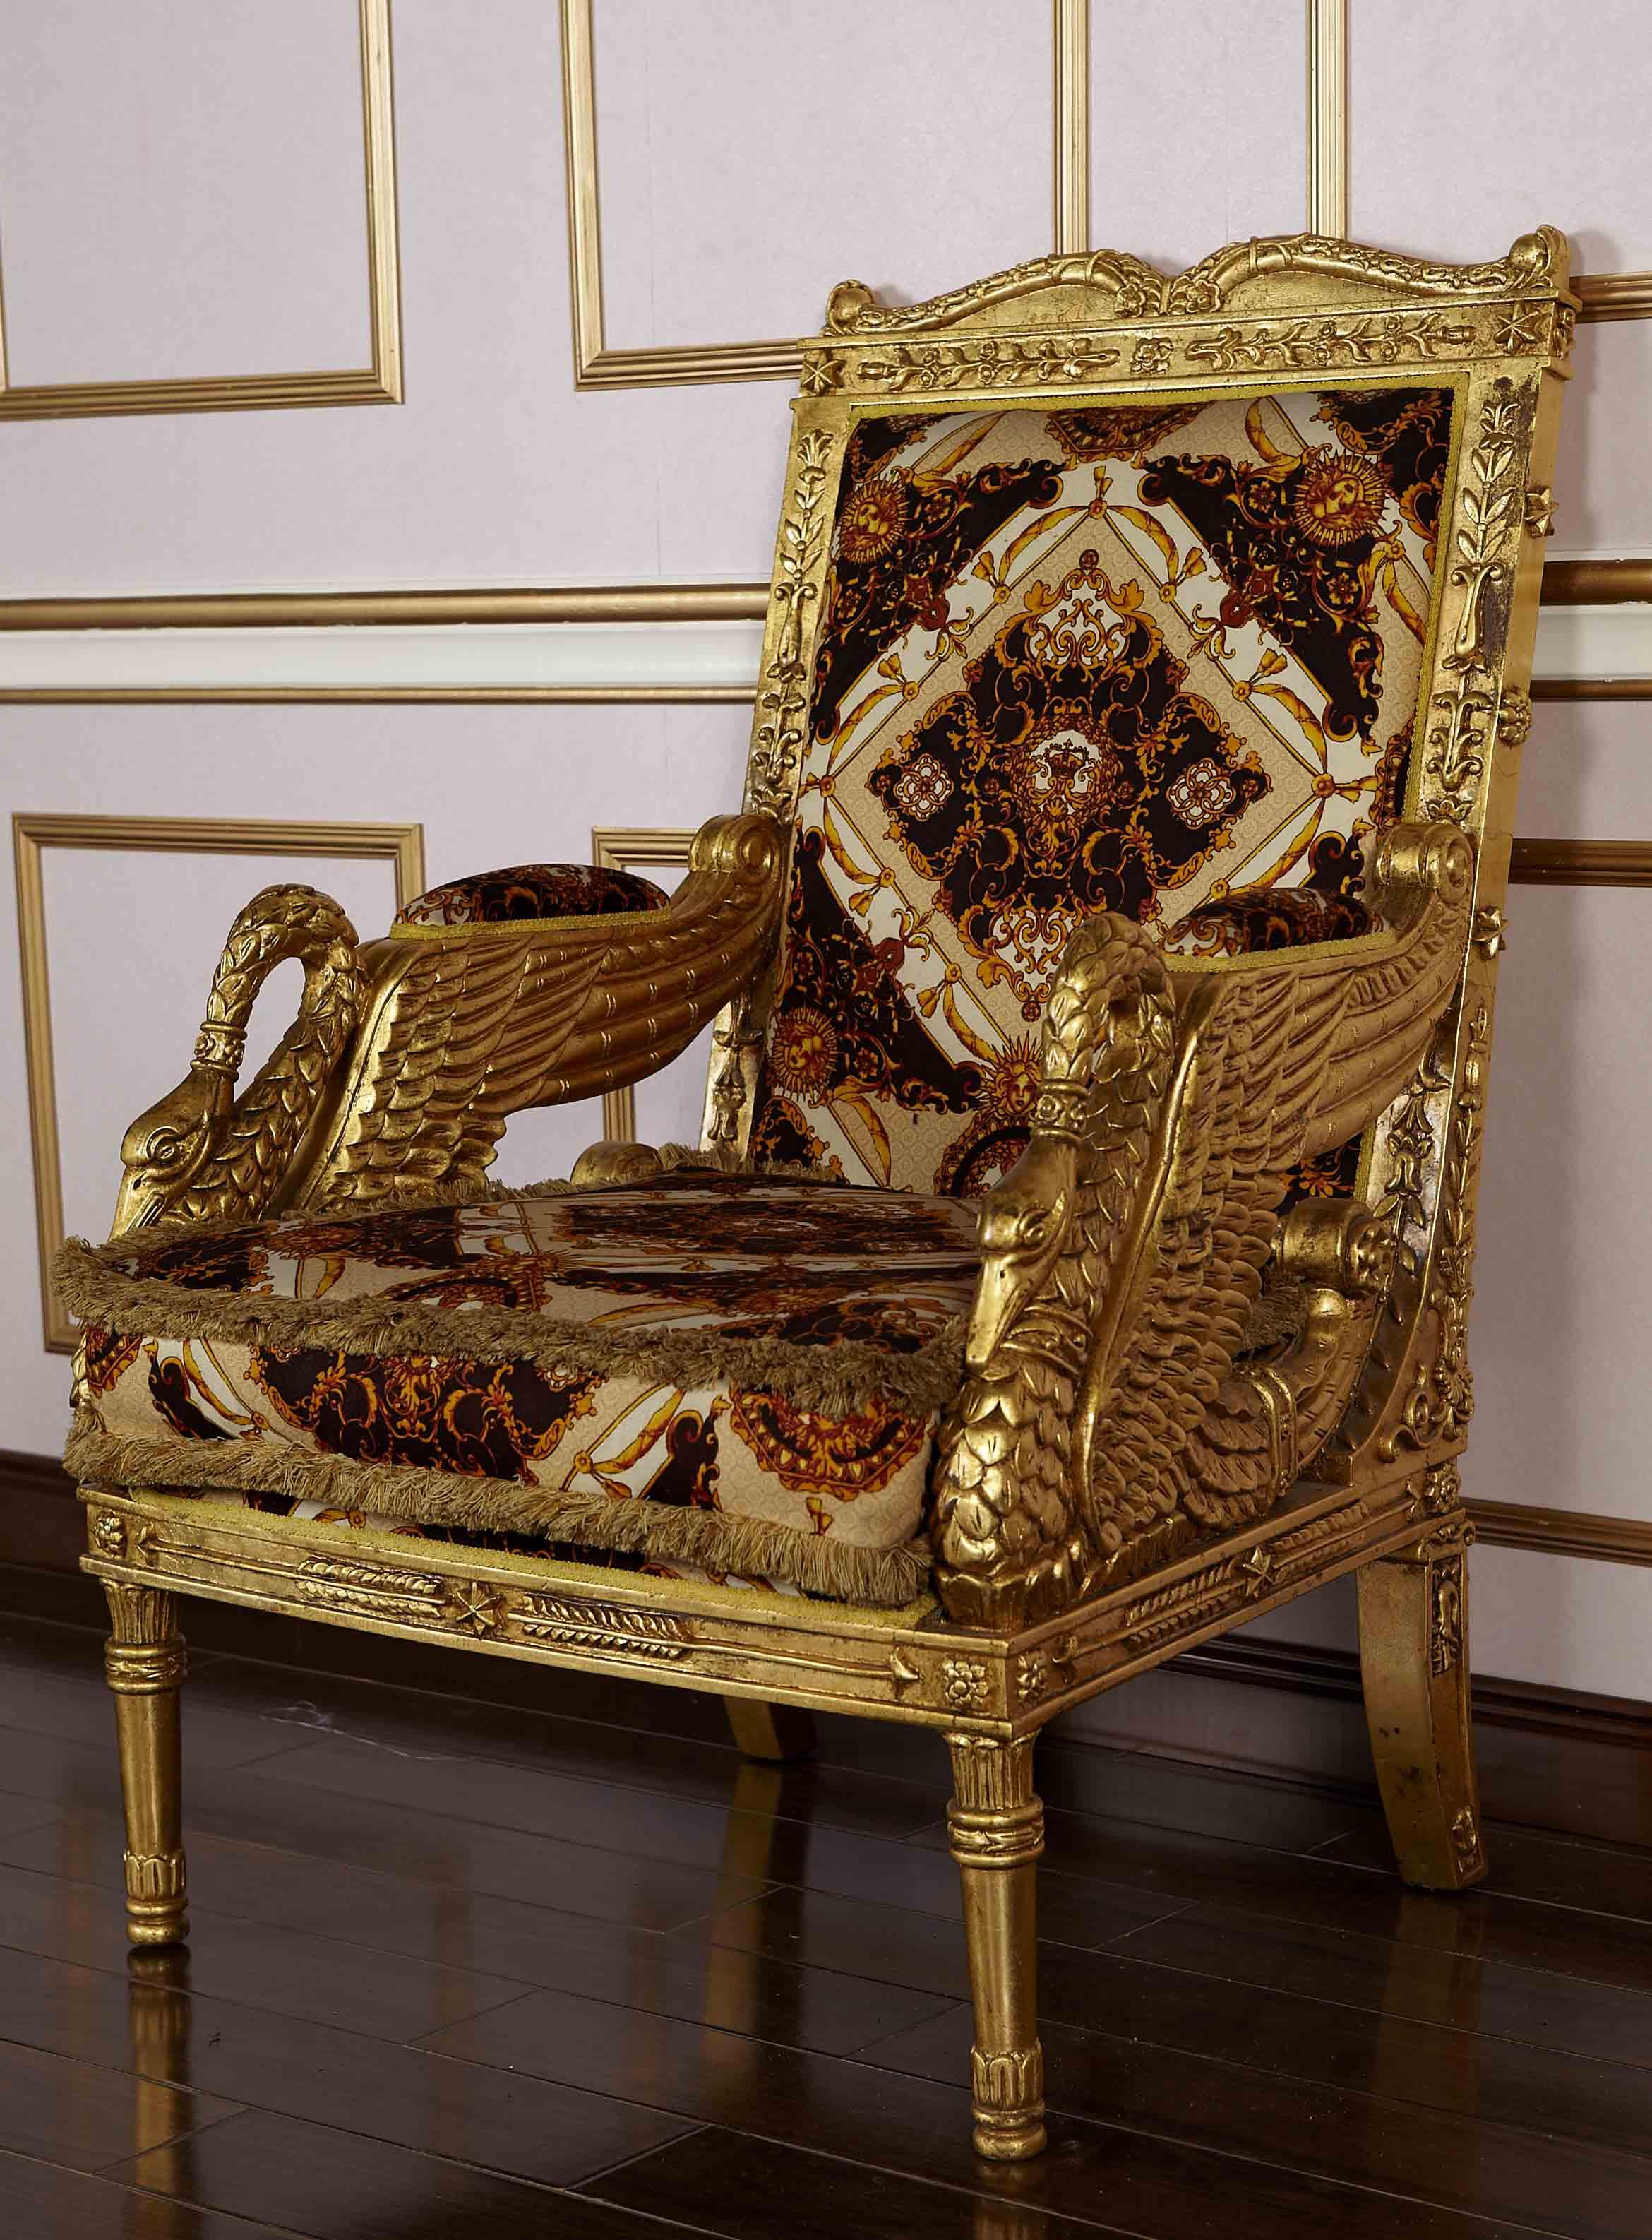 Royal Classic European Furniture   Hand Carved Solid Wood Armchair Royal Sofa  European Furniture Solid Wood Armchair Online With $1470.62/Piece On ...